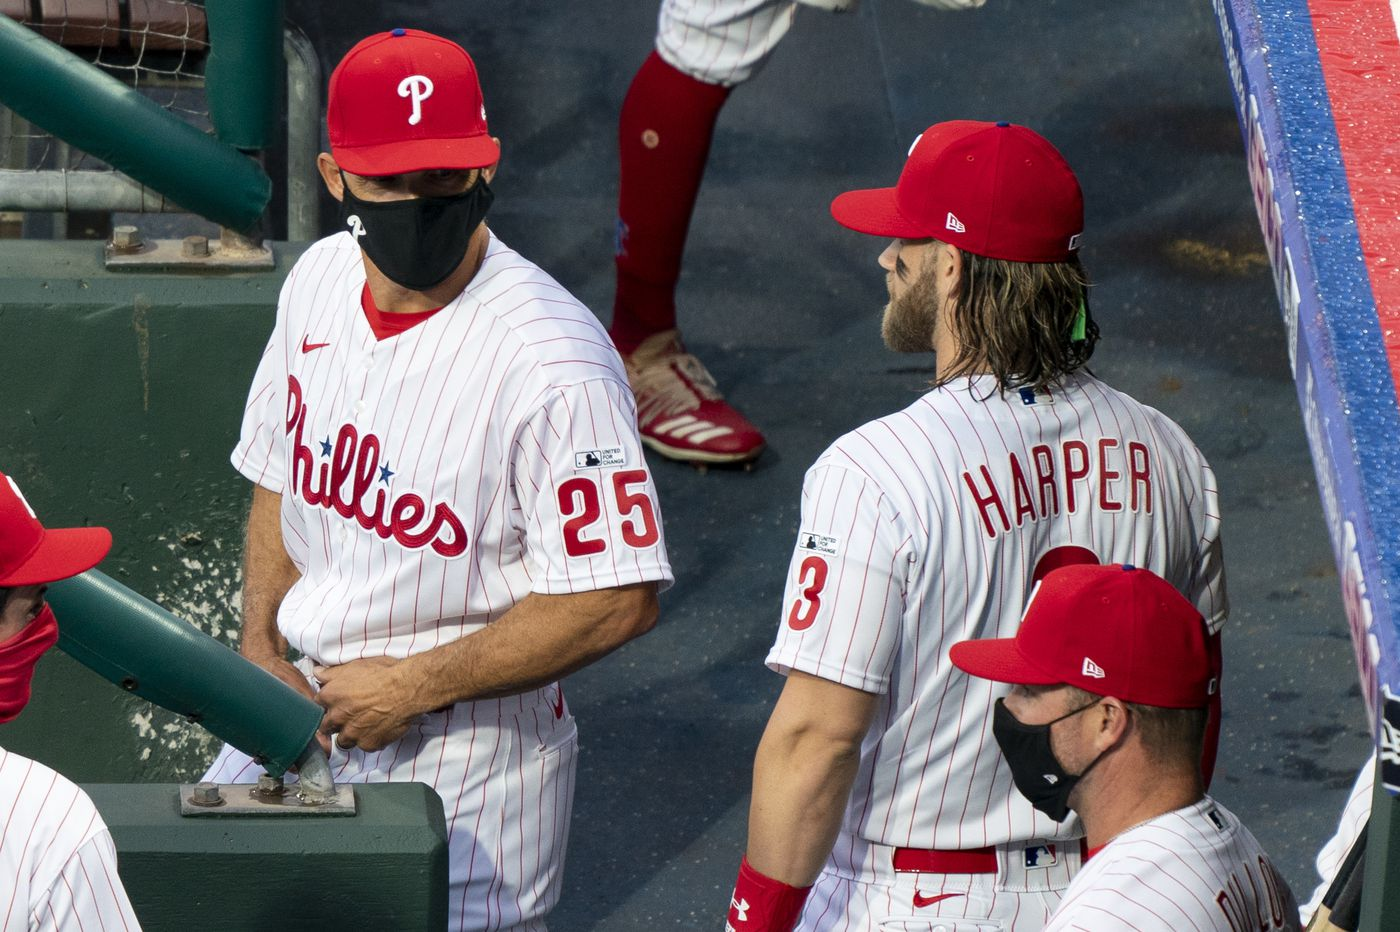 Bryce Harper marked Phillies manager Joe Girardi's 1,000th career win with an emotional speech | Extra Innings